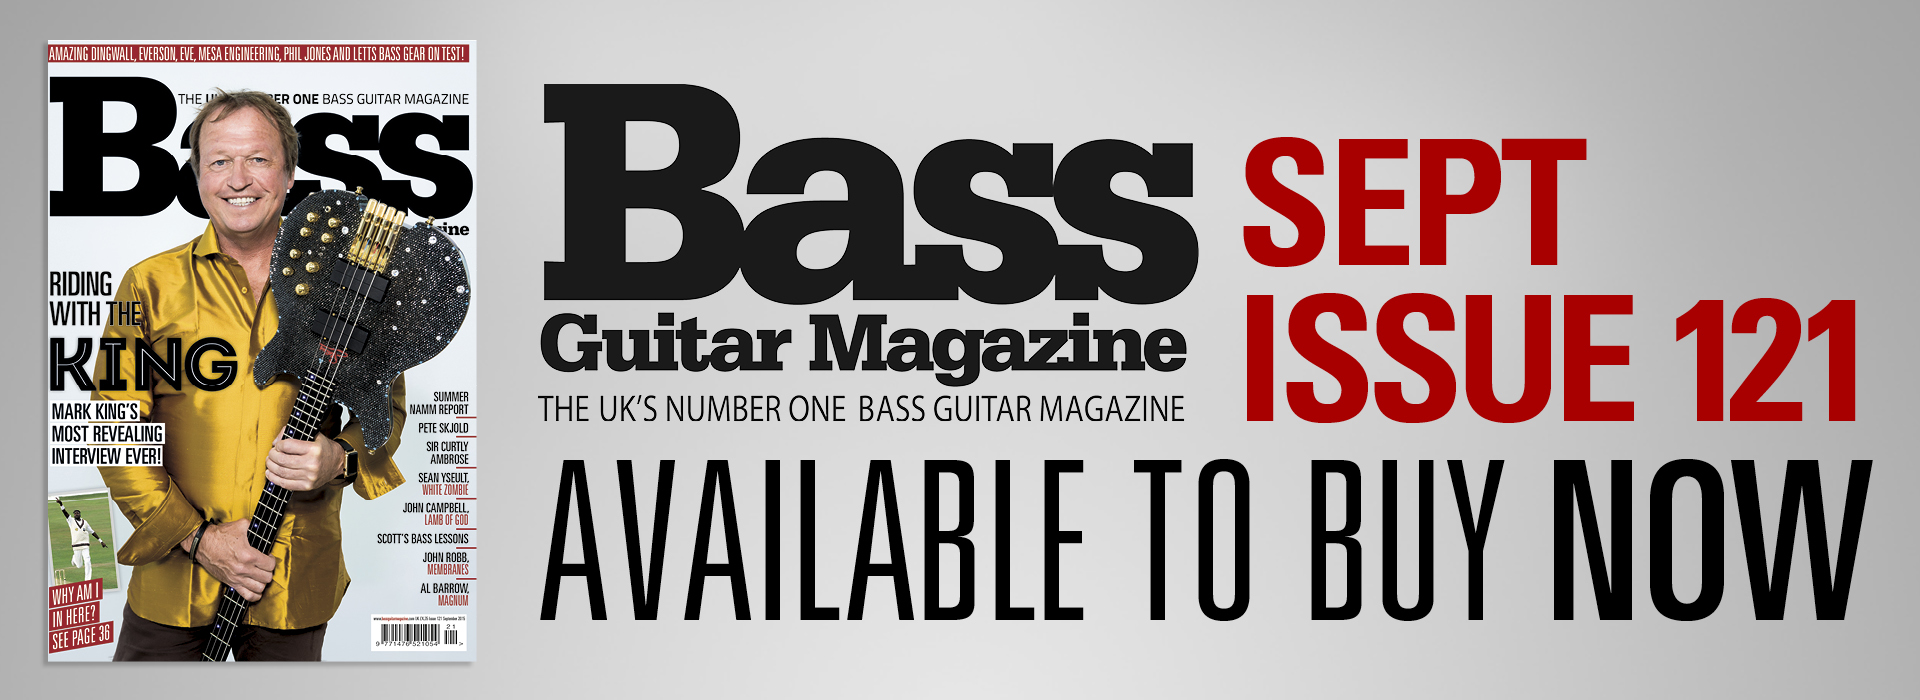 bass-web-issue-119-on-sale